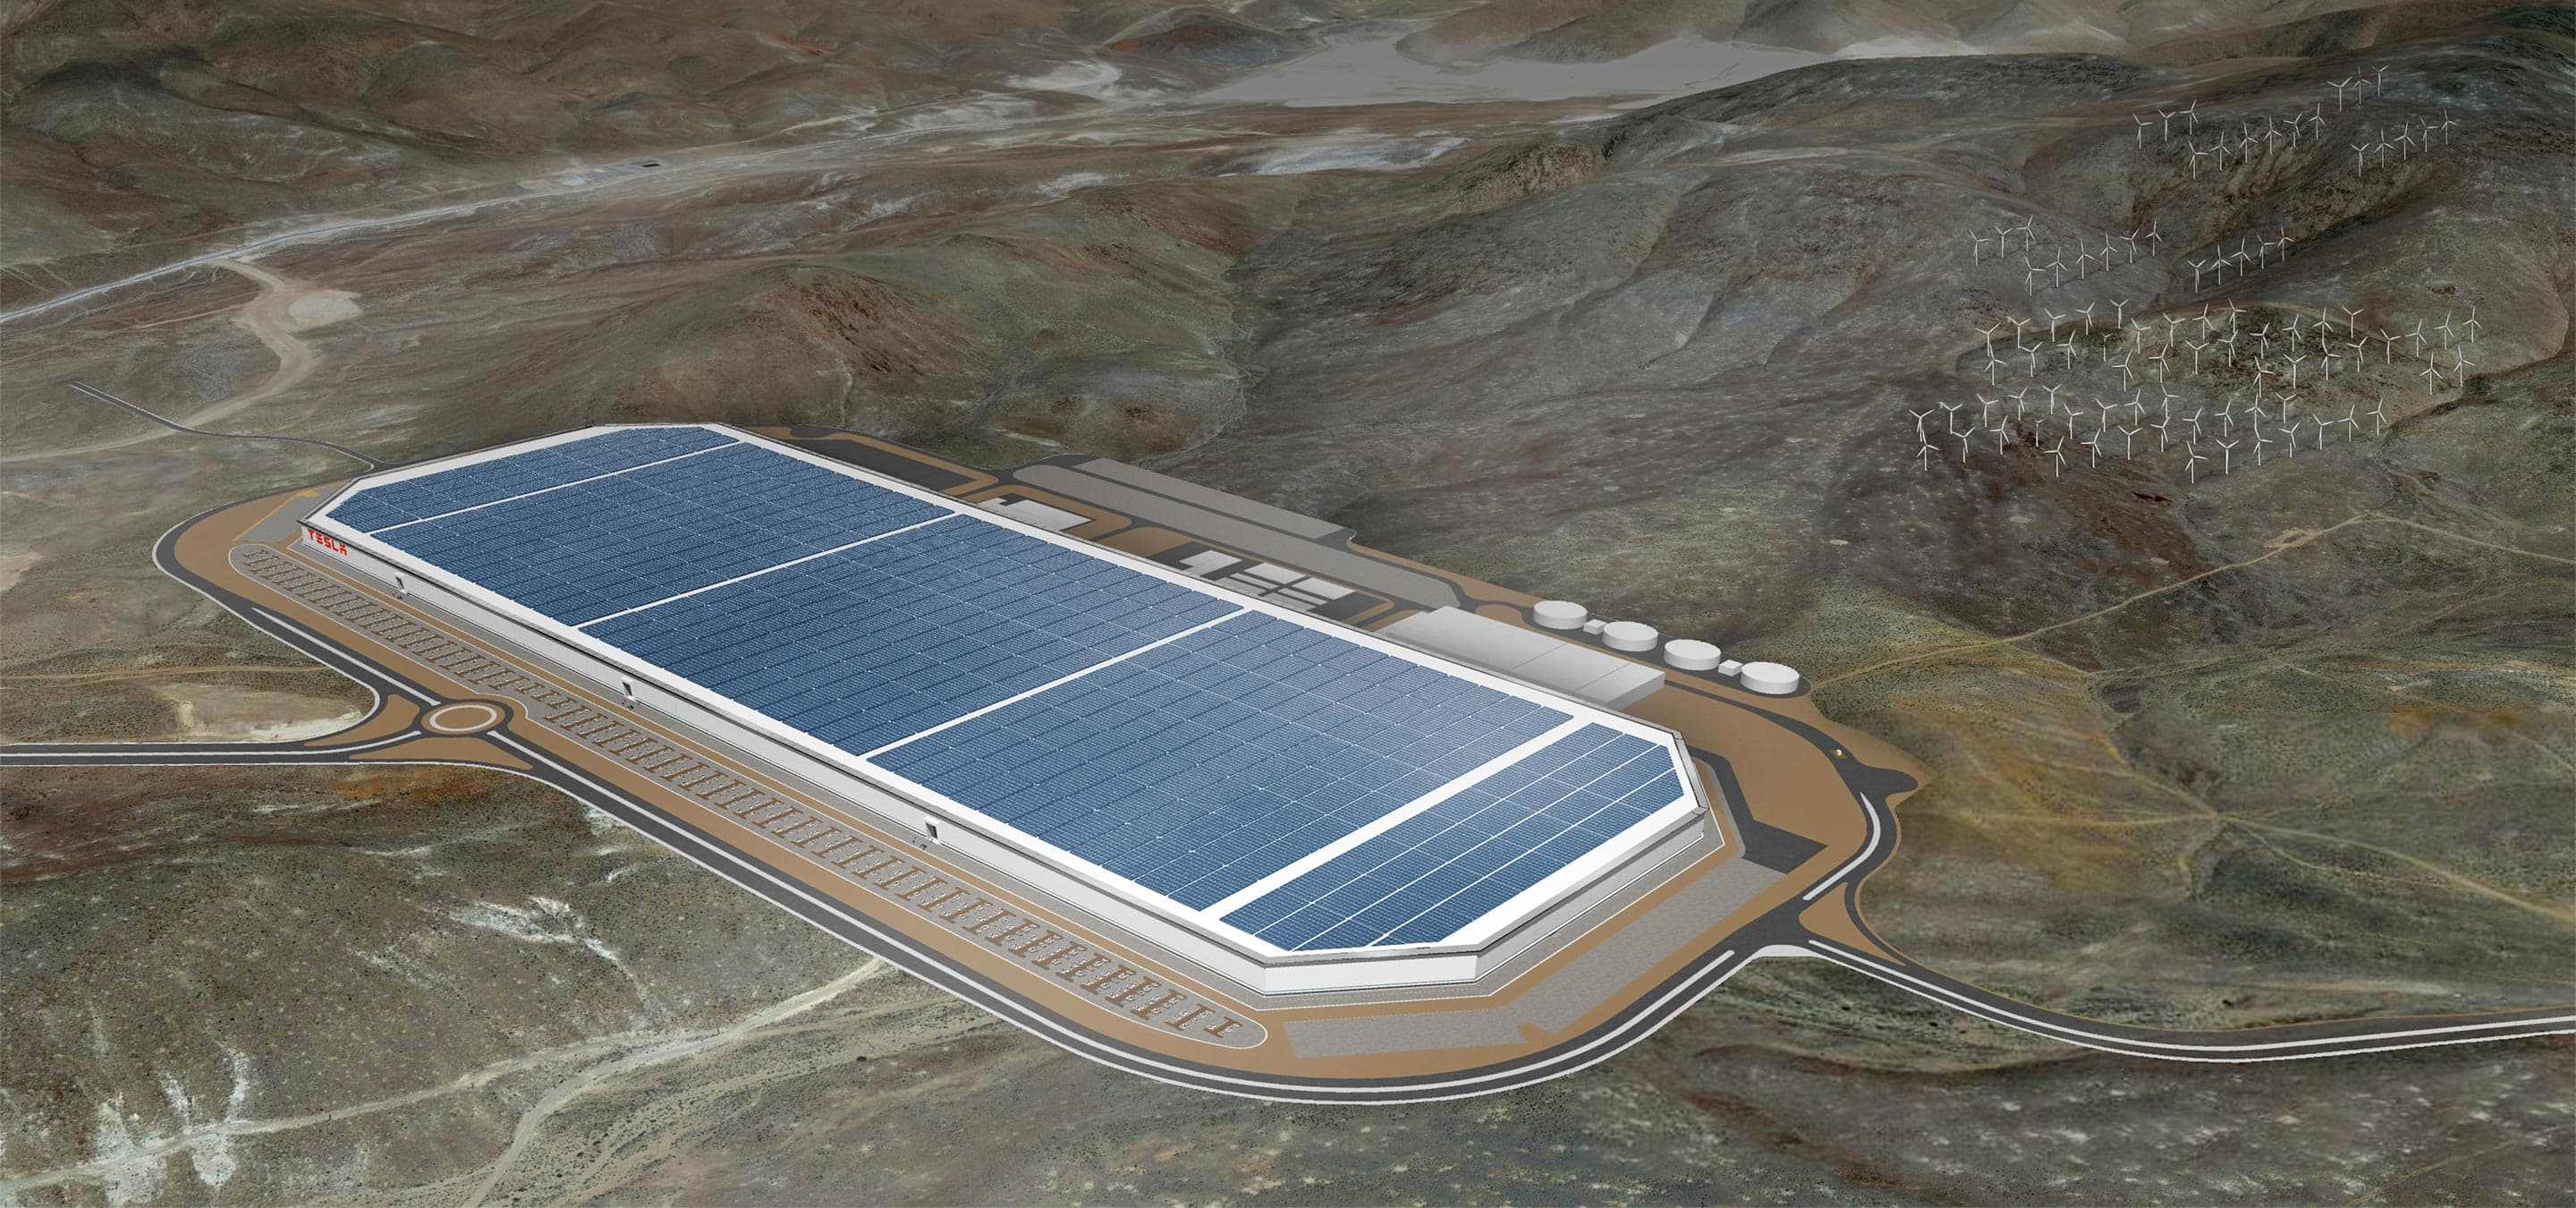 Tesla Gigafactory How Solar Energy Works Diagram Apps Directories